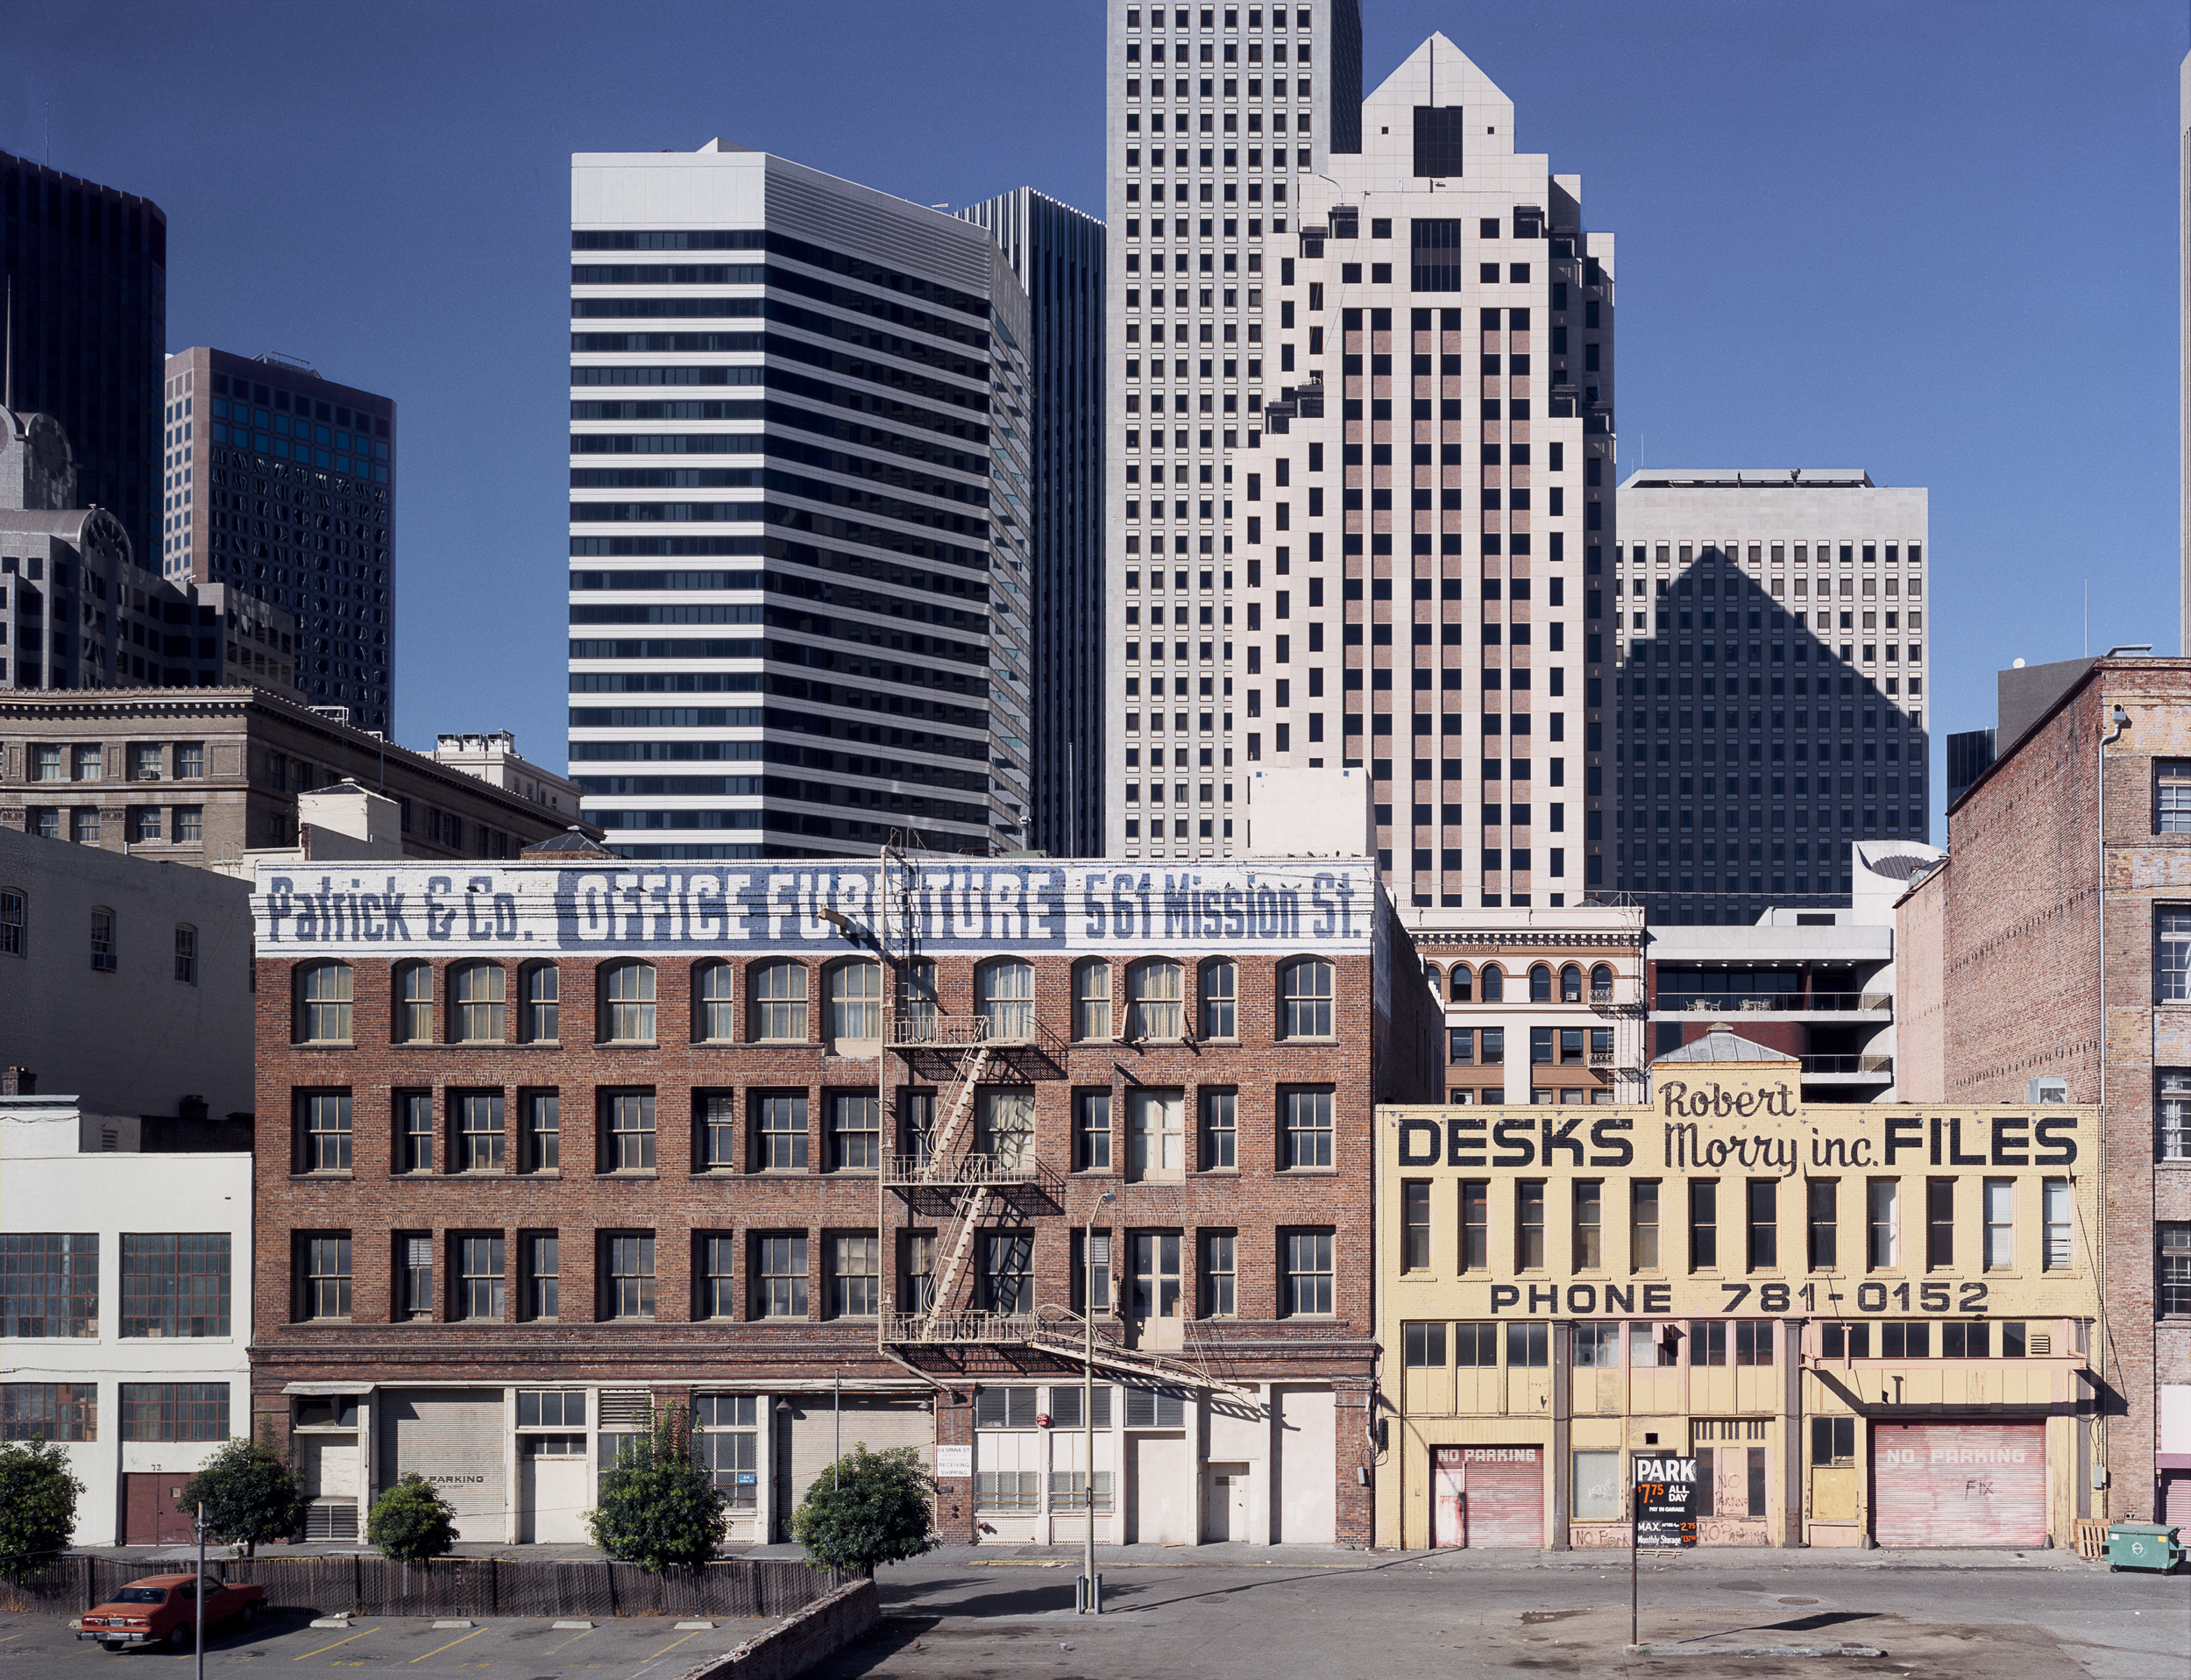 View of the Financial District from south of Market Street, 1980 Archival Pigment Print, 2016 16 x 20 inches, edition of 5 20 x 24 inches, edition of 2 30 x 40 inches, edition of 2